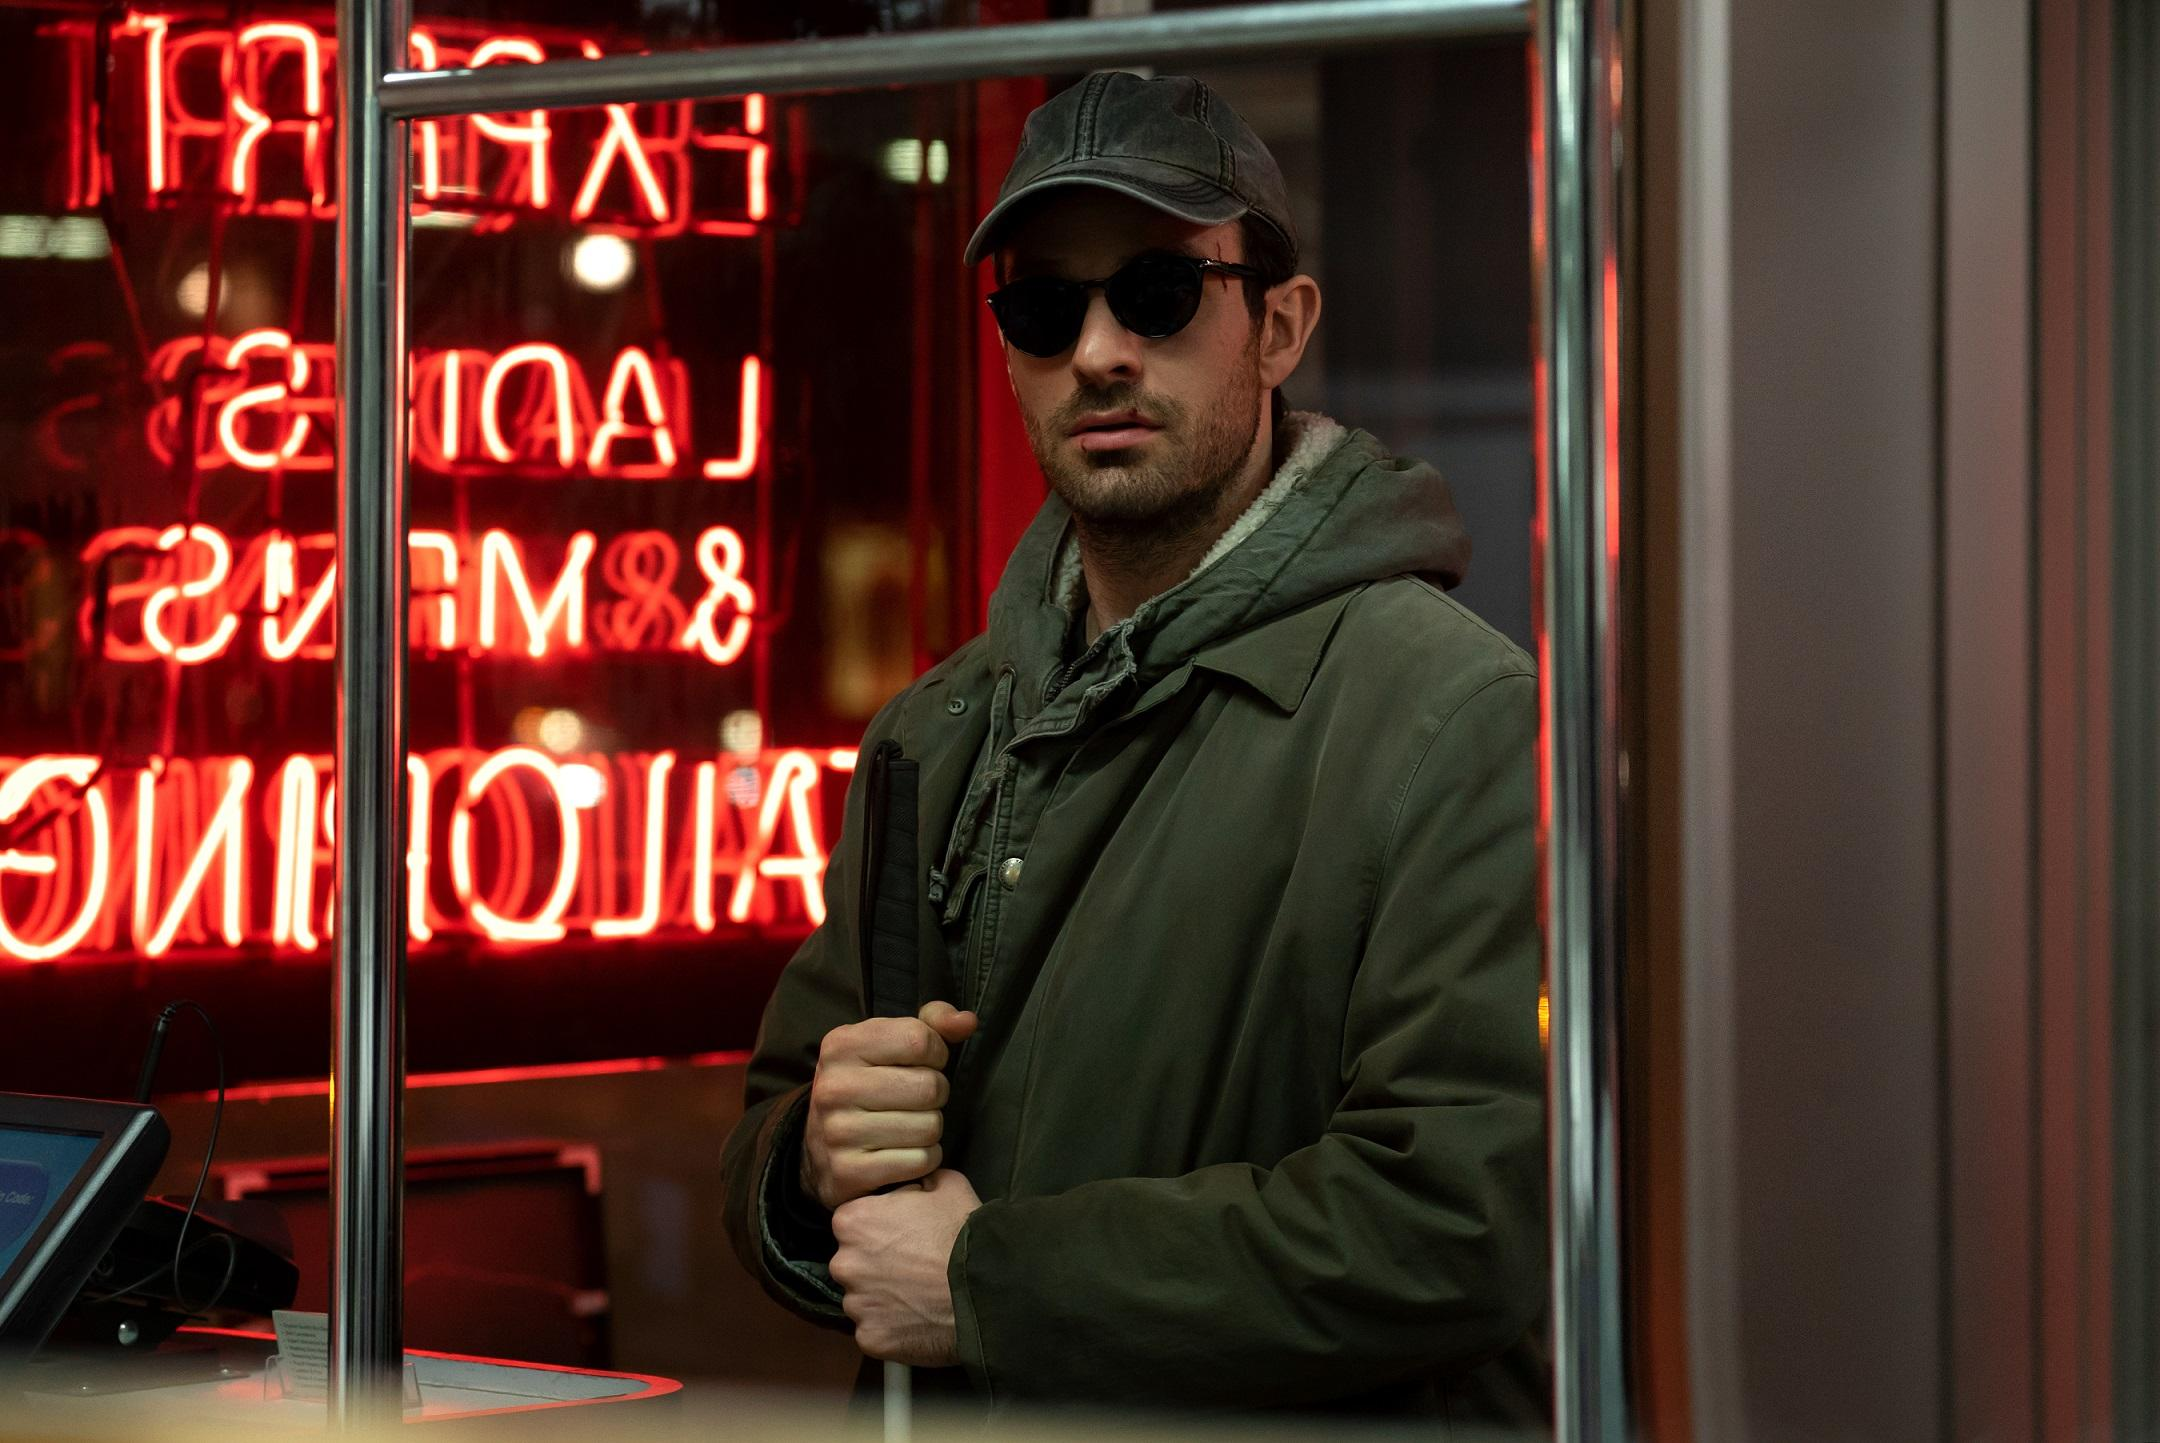 The character of Daredevil stand in front of a neon sign holding his walking cane.